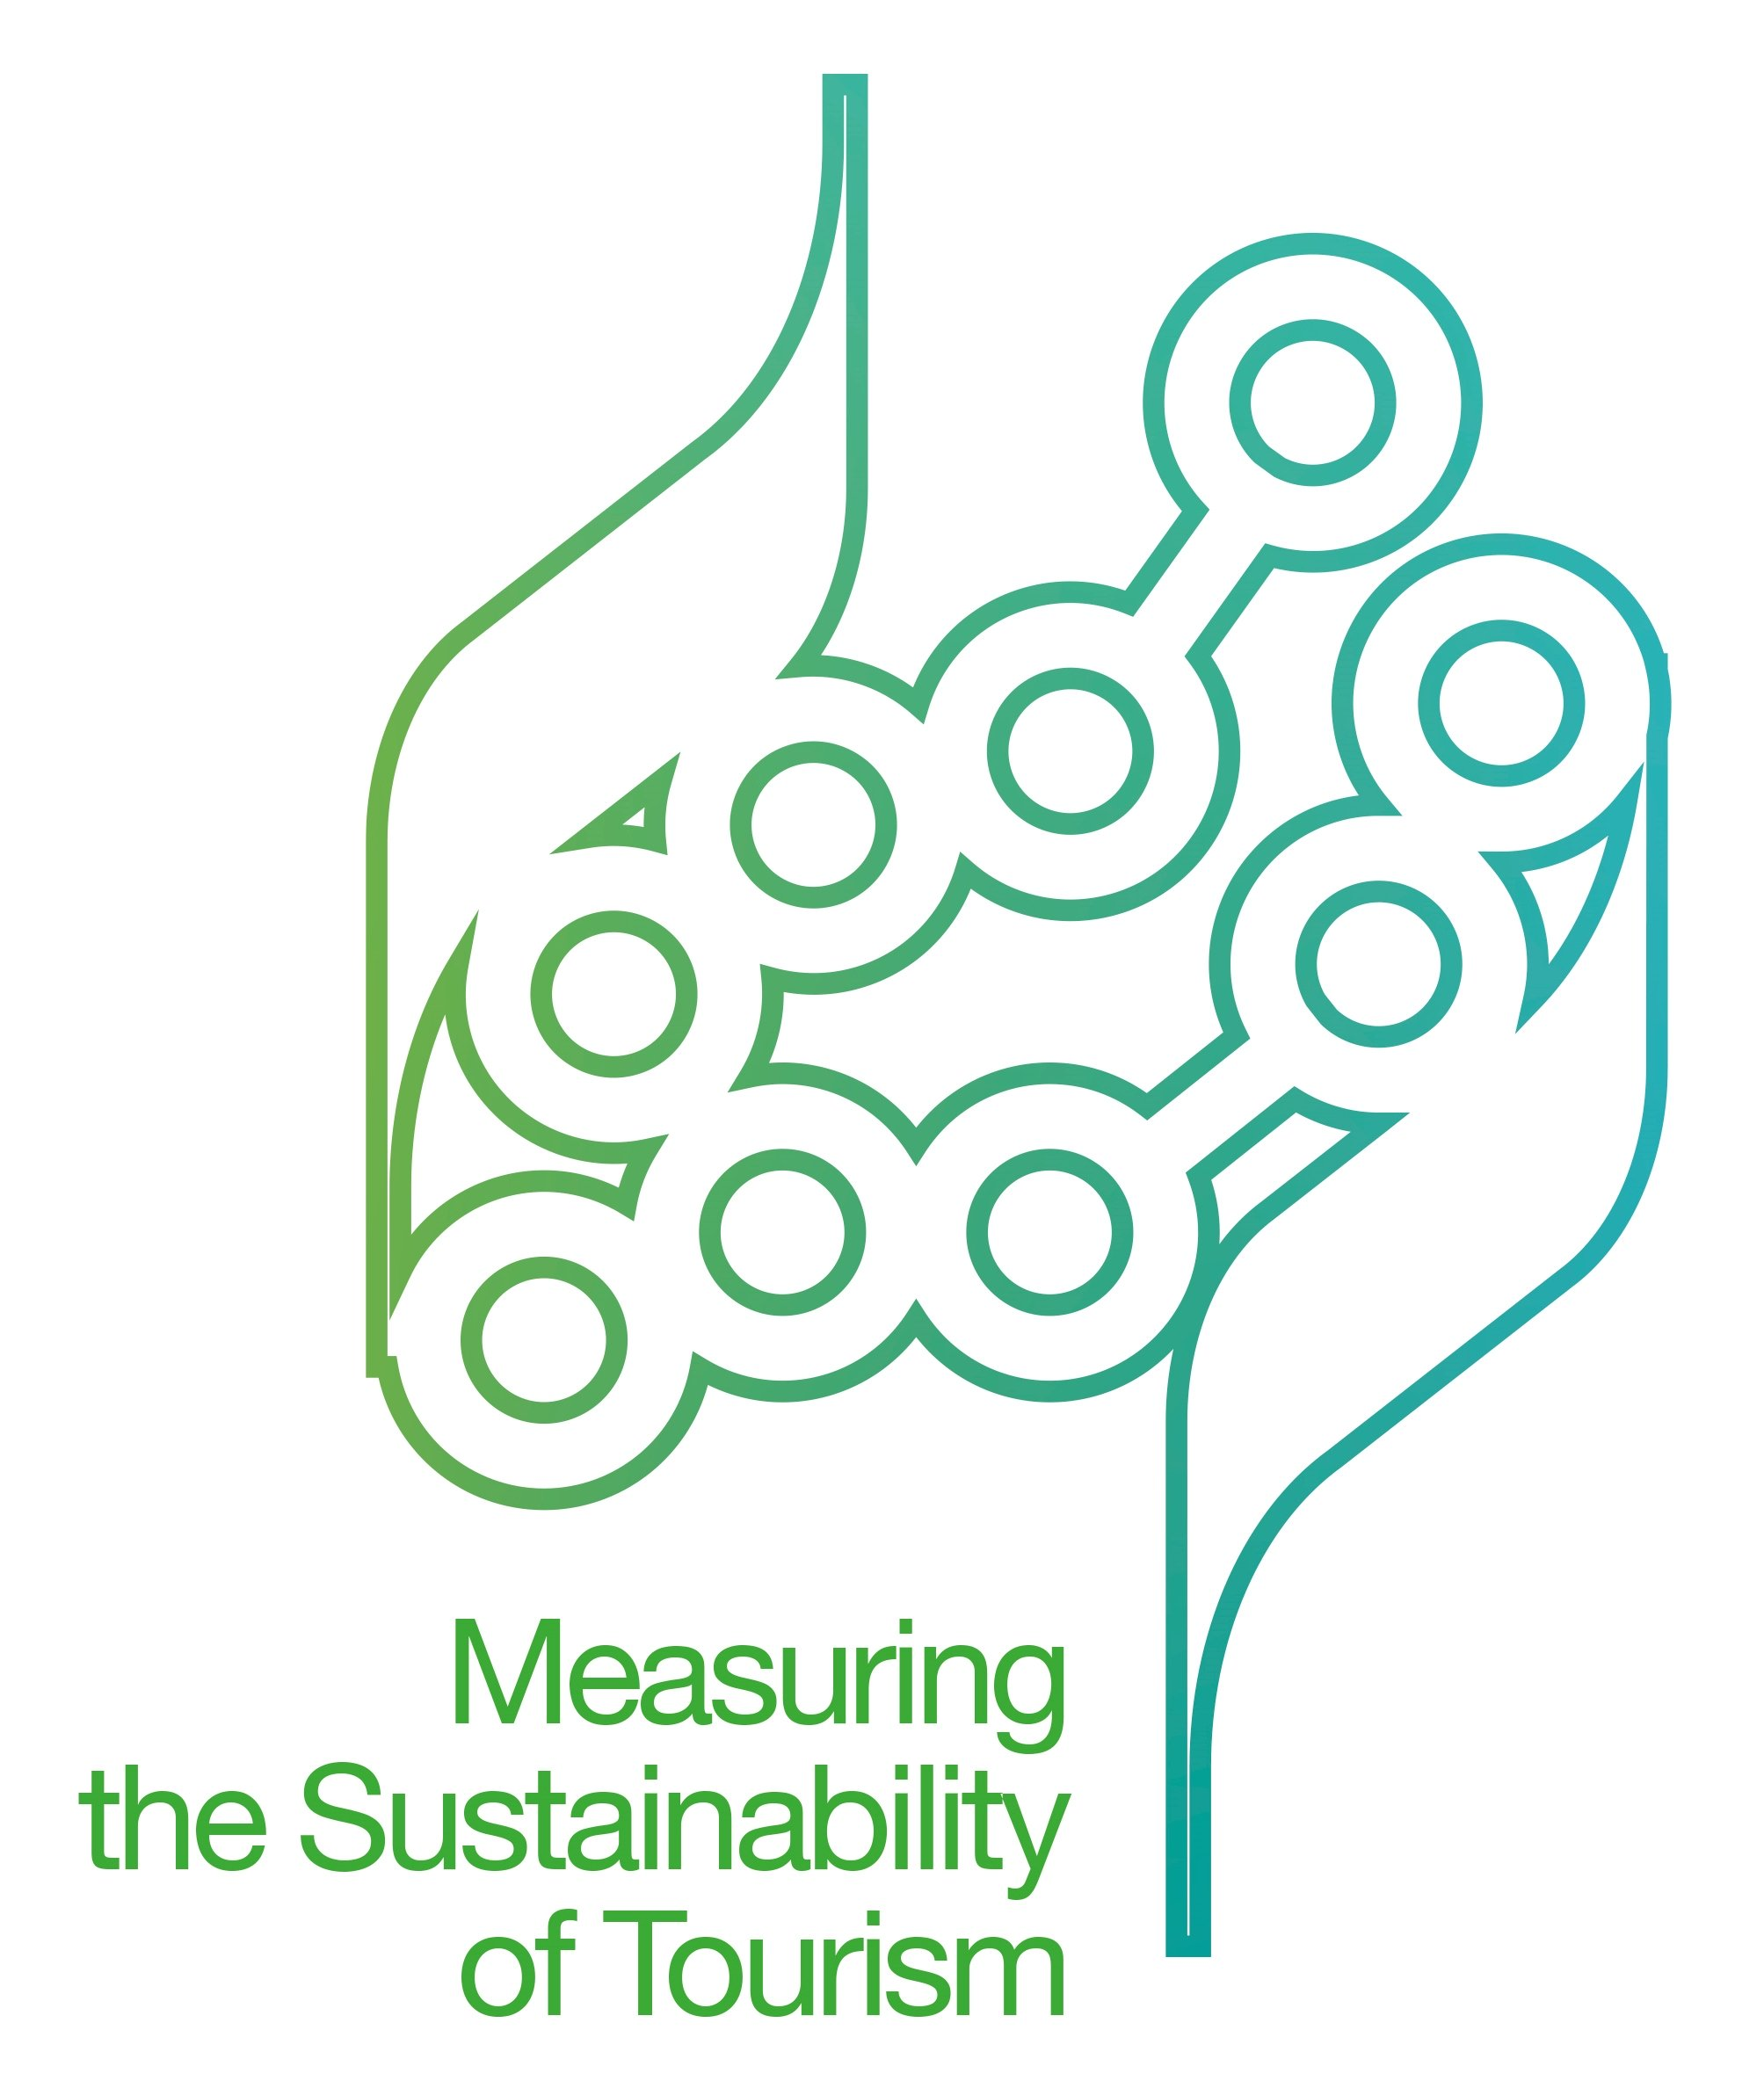 Measuring the Sustainability of Tourism